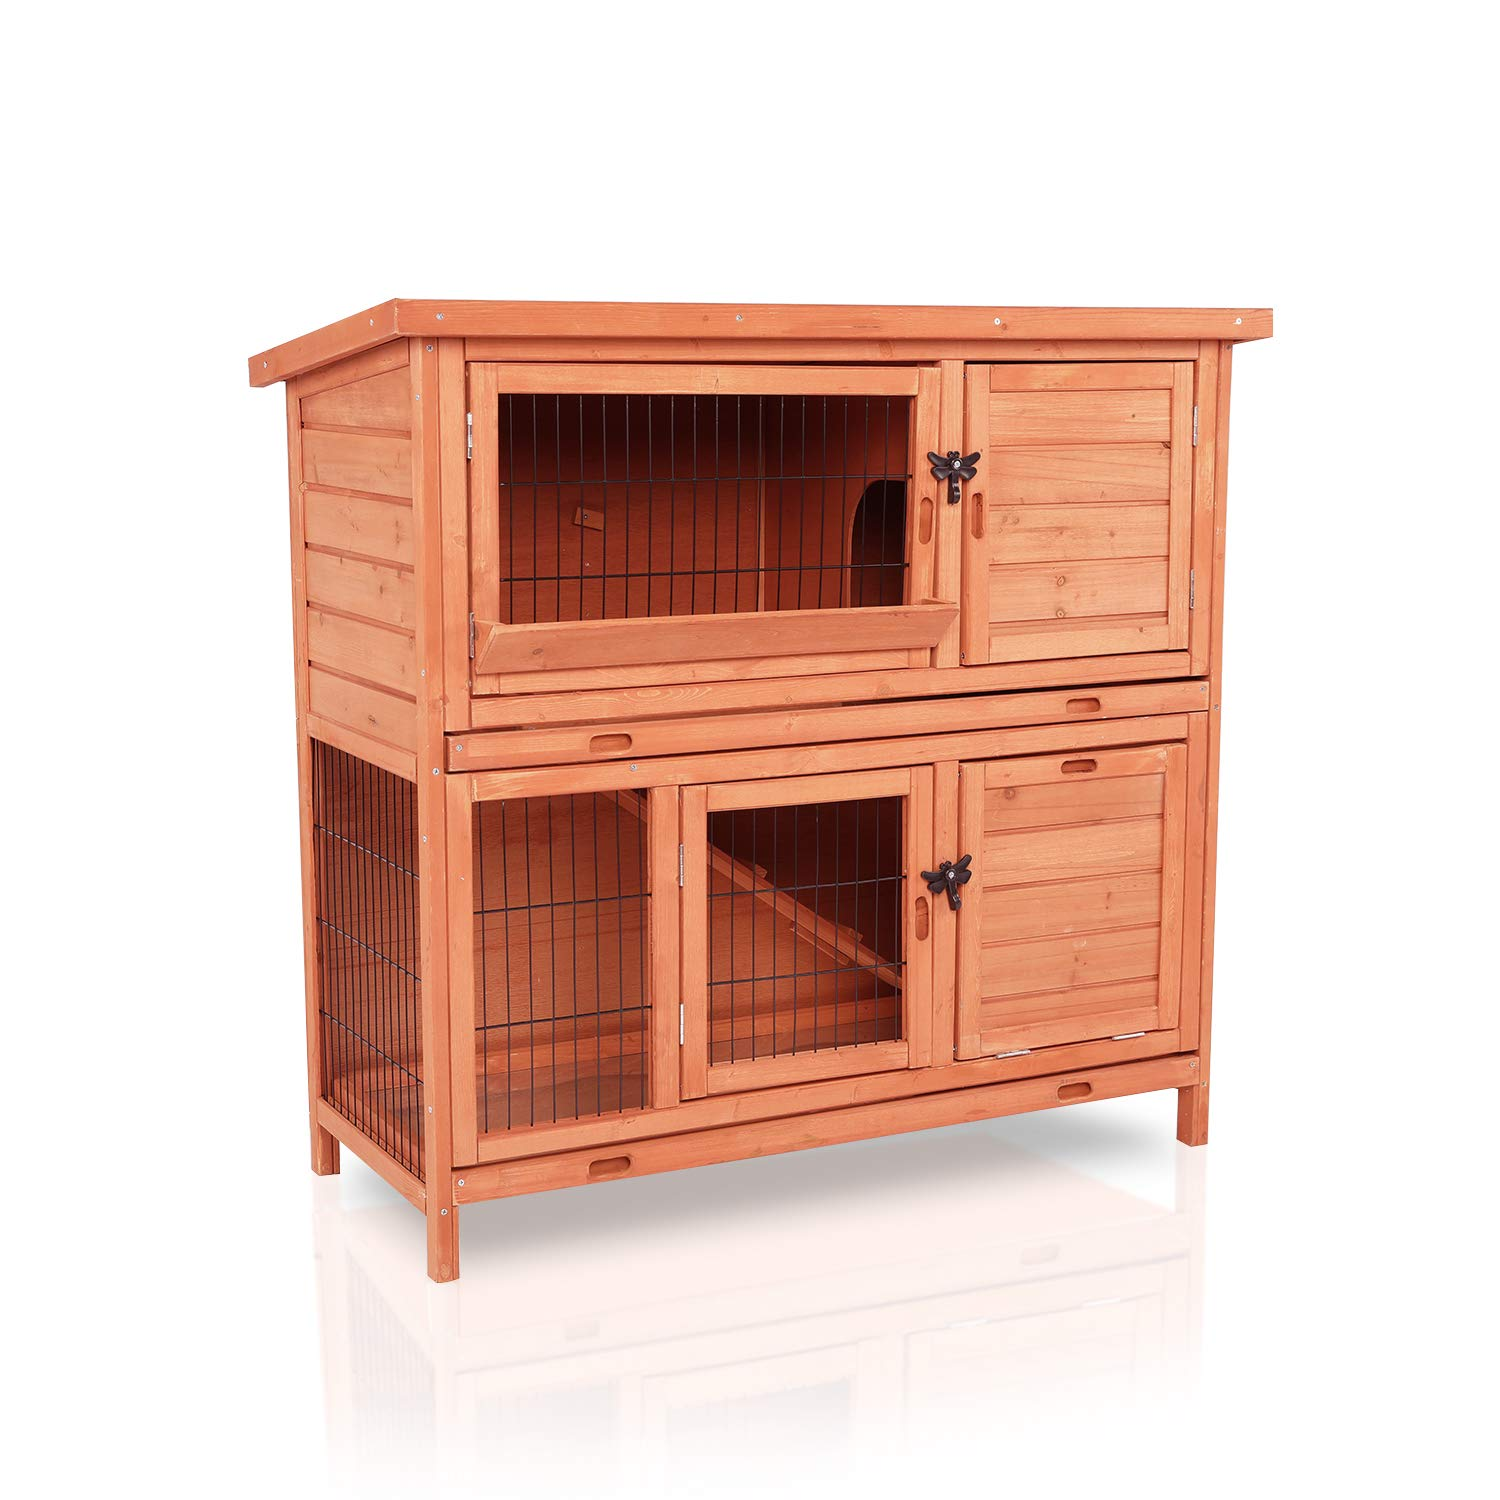 LAZY BUDDY Rabbit Hutch, 40'' Wooden Rabbit Cage Indoor and Outdoor Use with Waterproof Roof for Bunny, Rabbit, Chicken and Other Pets by LAZY BUDDY